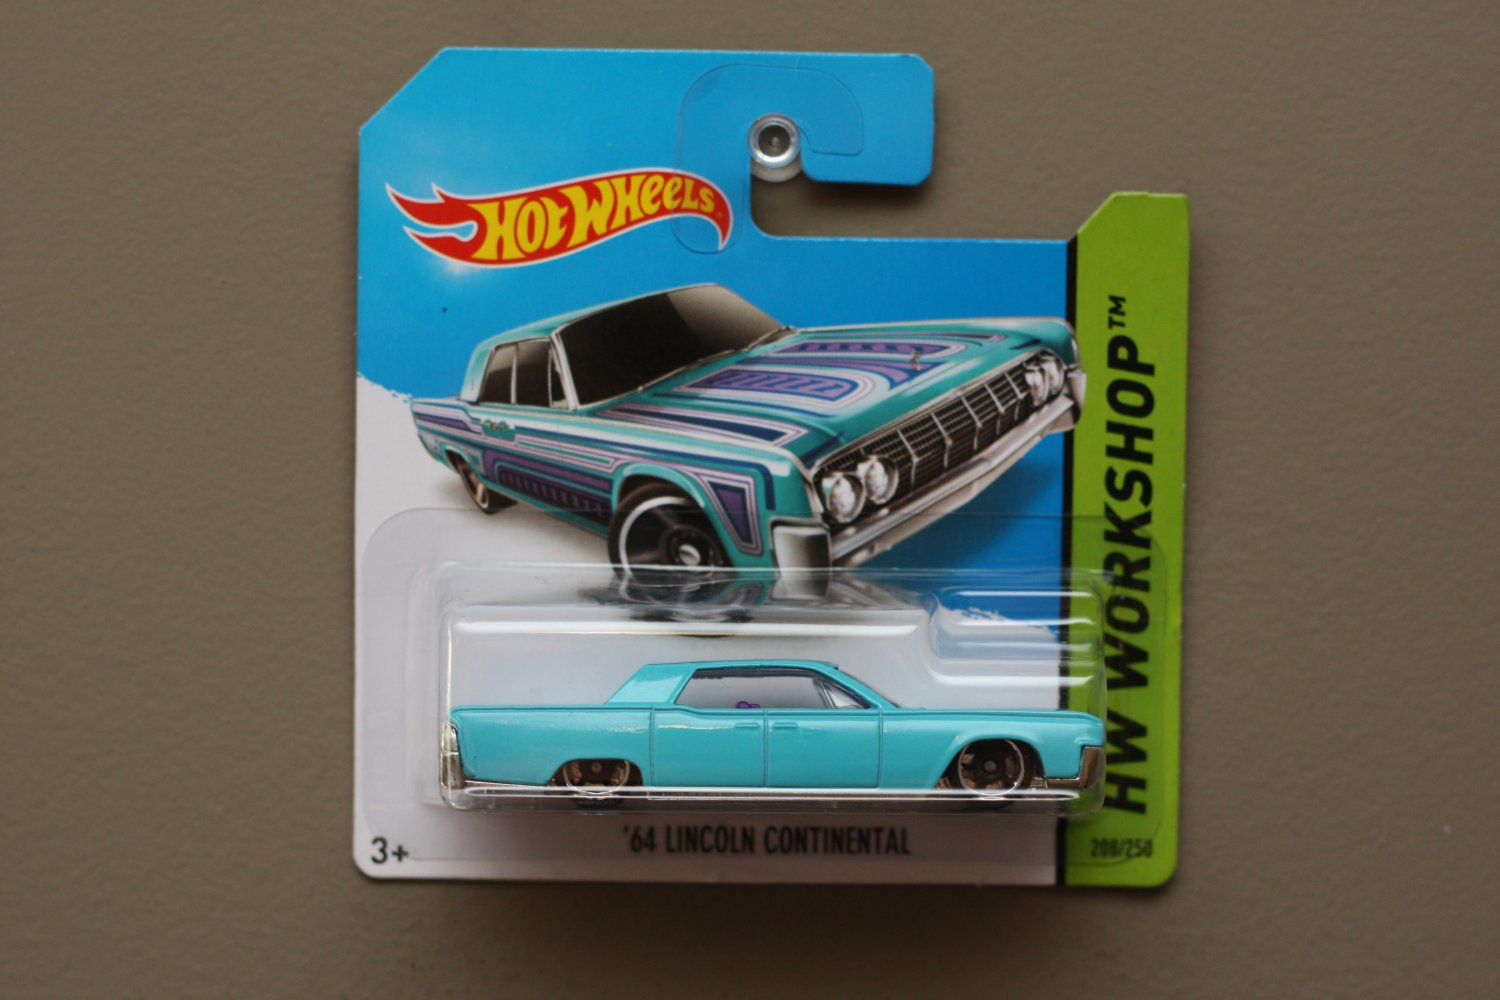 [MISSING TAMPO ERROR] Hot Wheels 2014 HW Workshop '64 Lincoln Continental (turquoise)